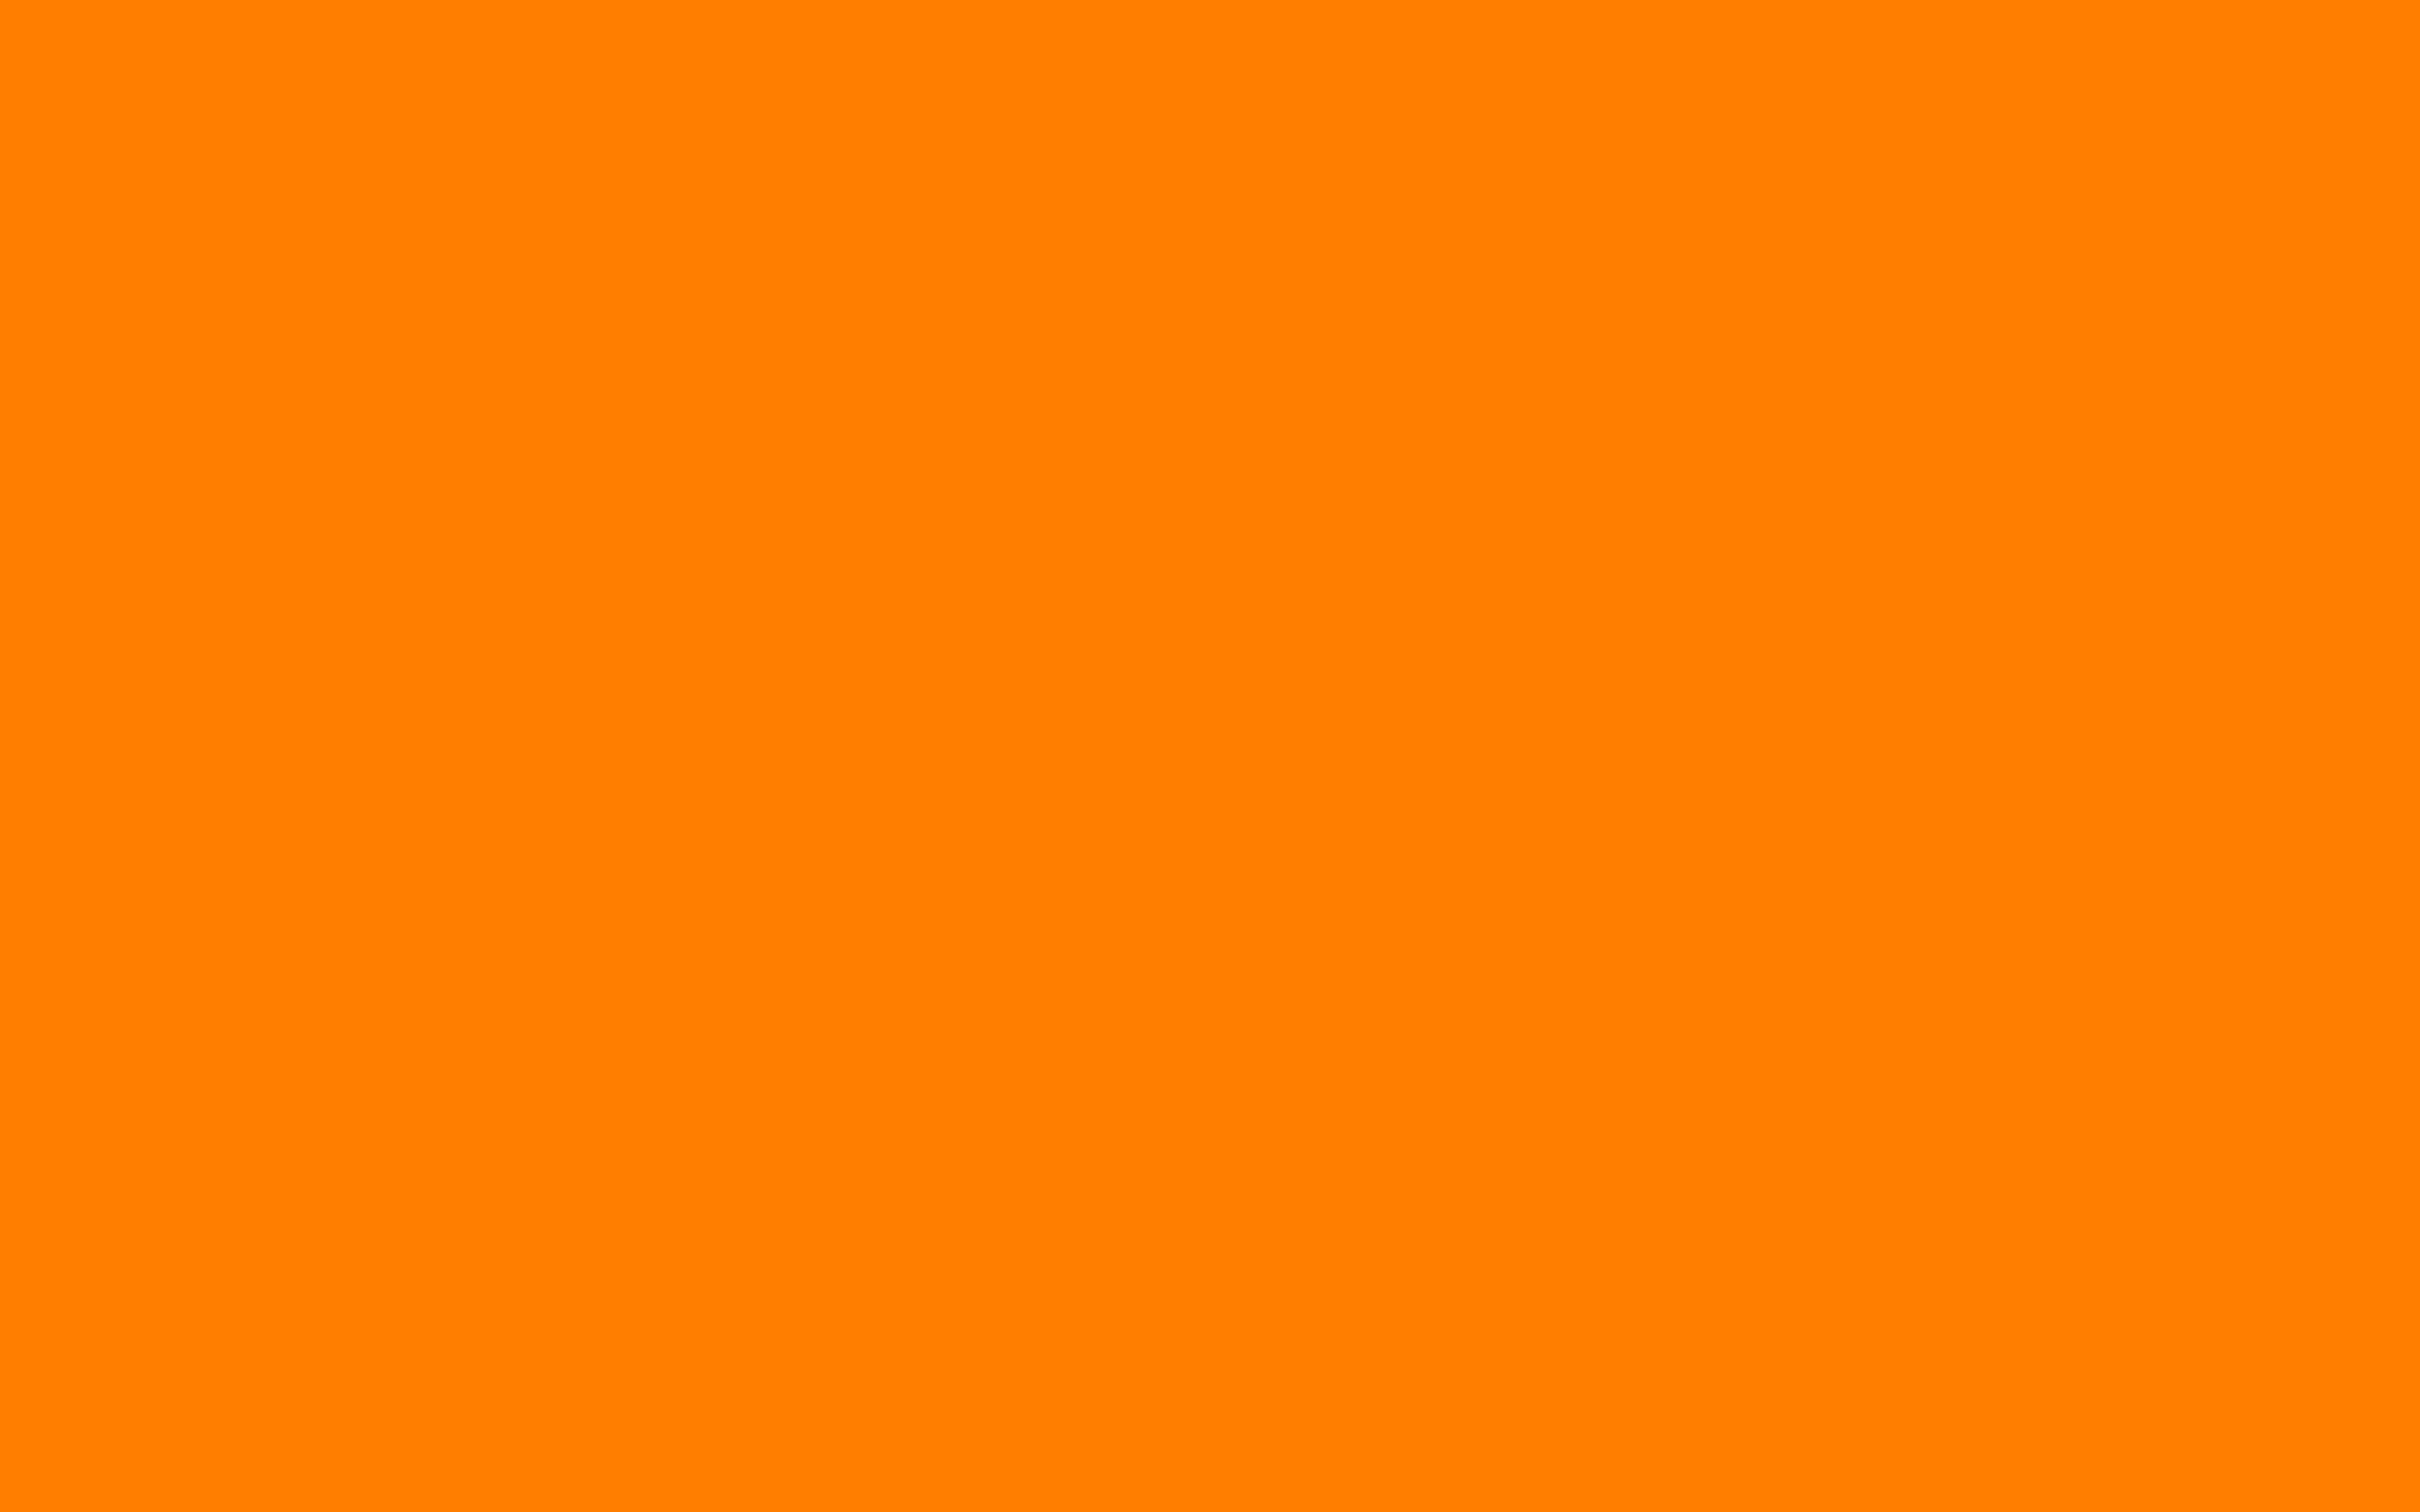 2880x1800 Amber Orange Solid Color Background 2880x1800